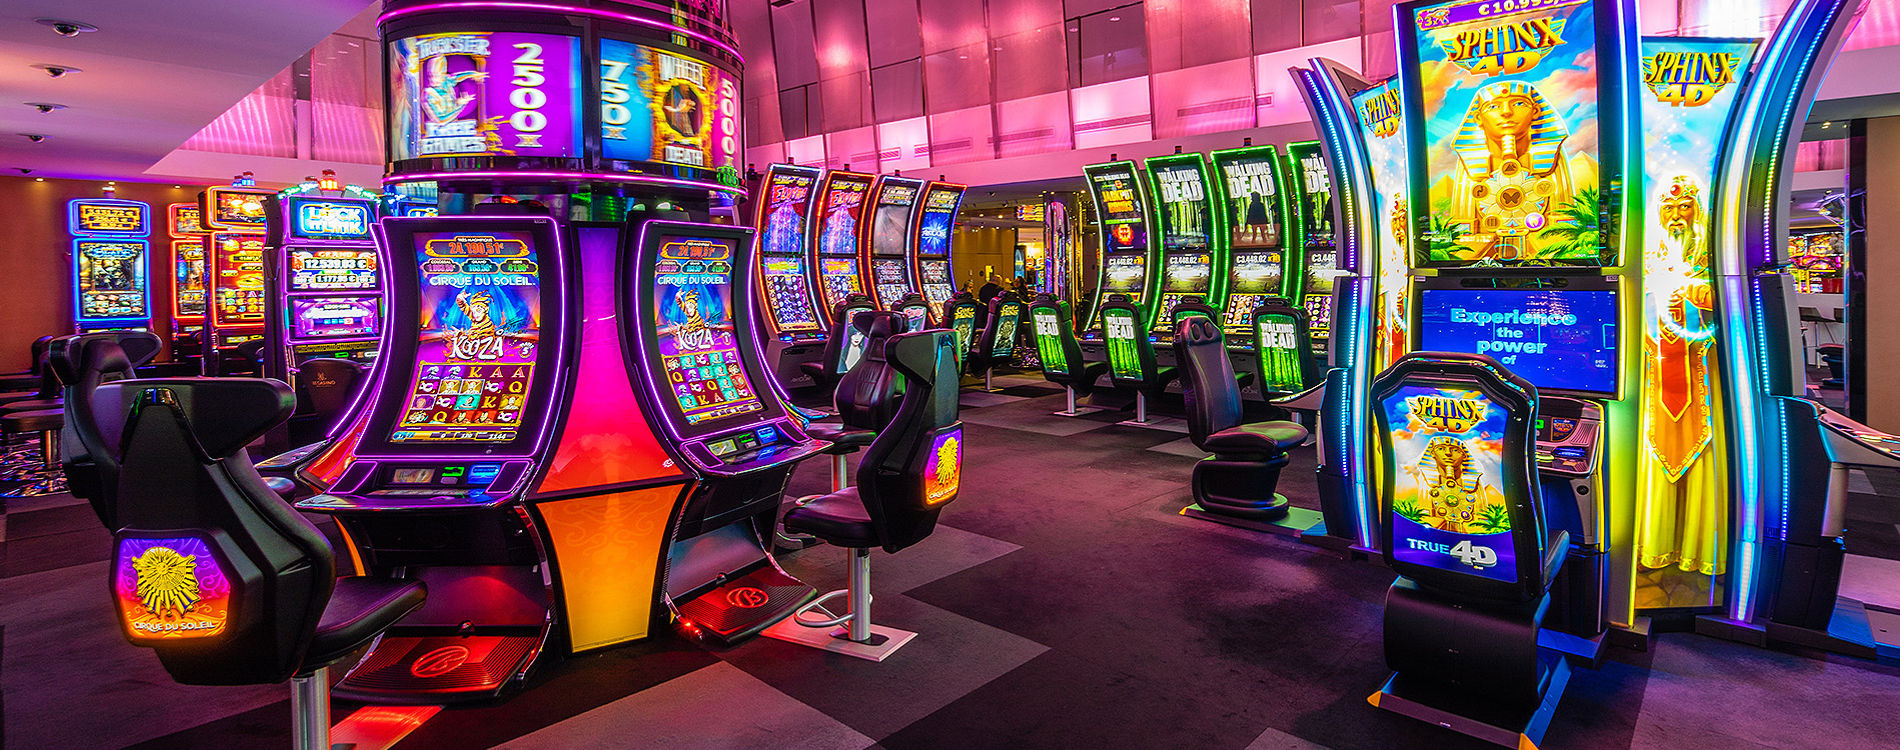 Decide to start your gaming process as the casino games are highly secure.